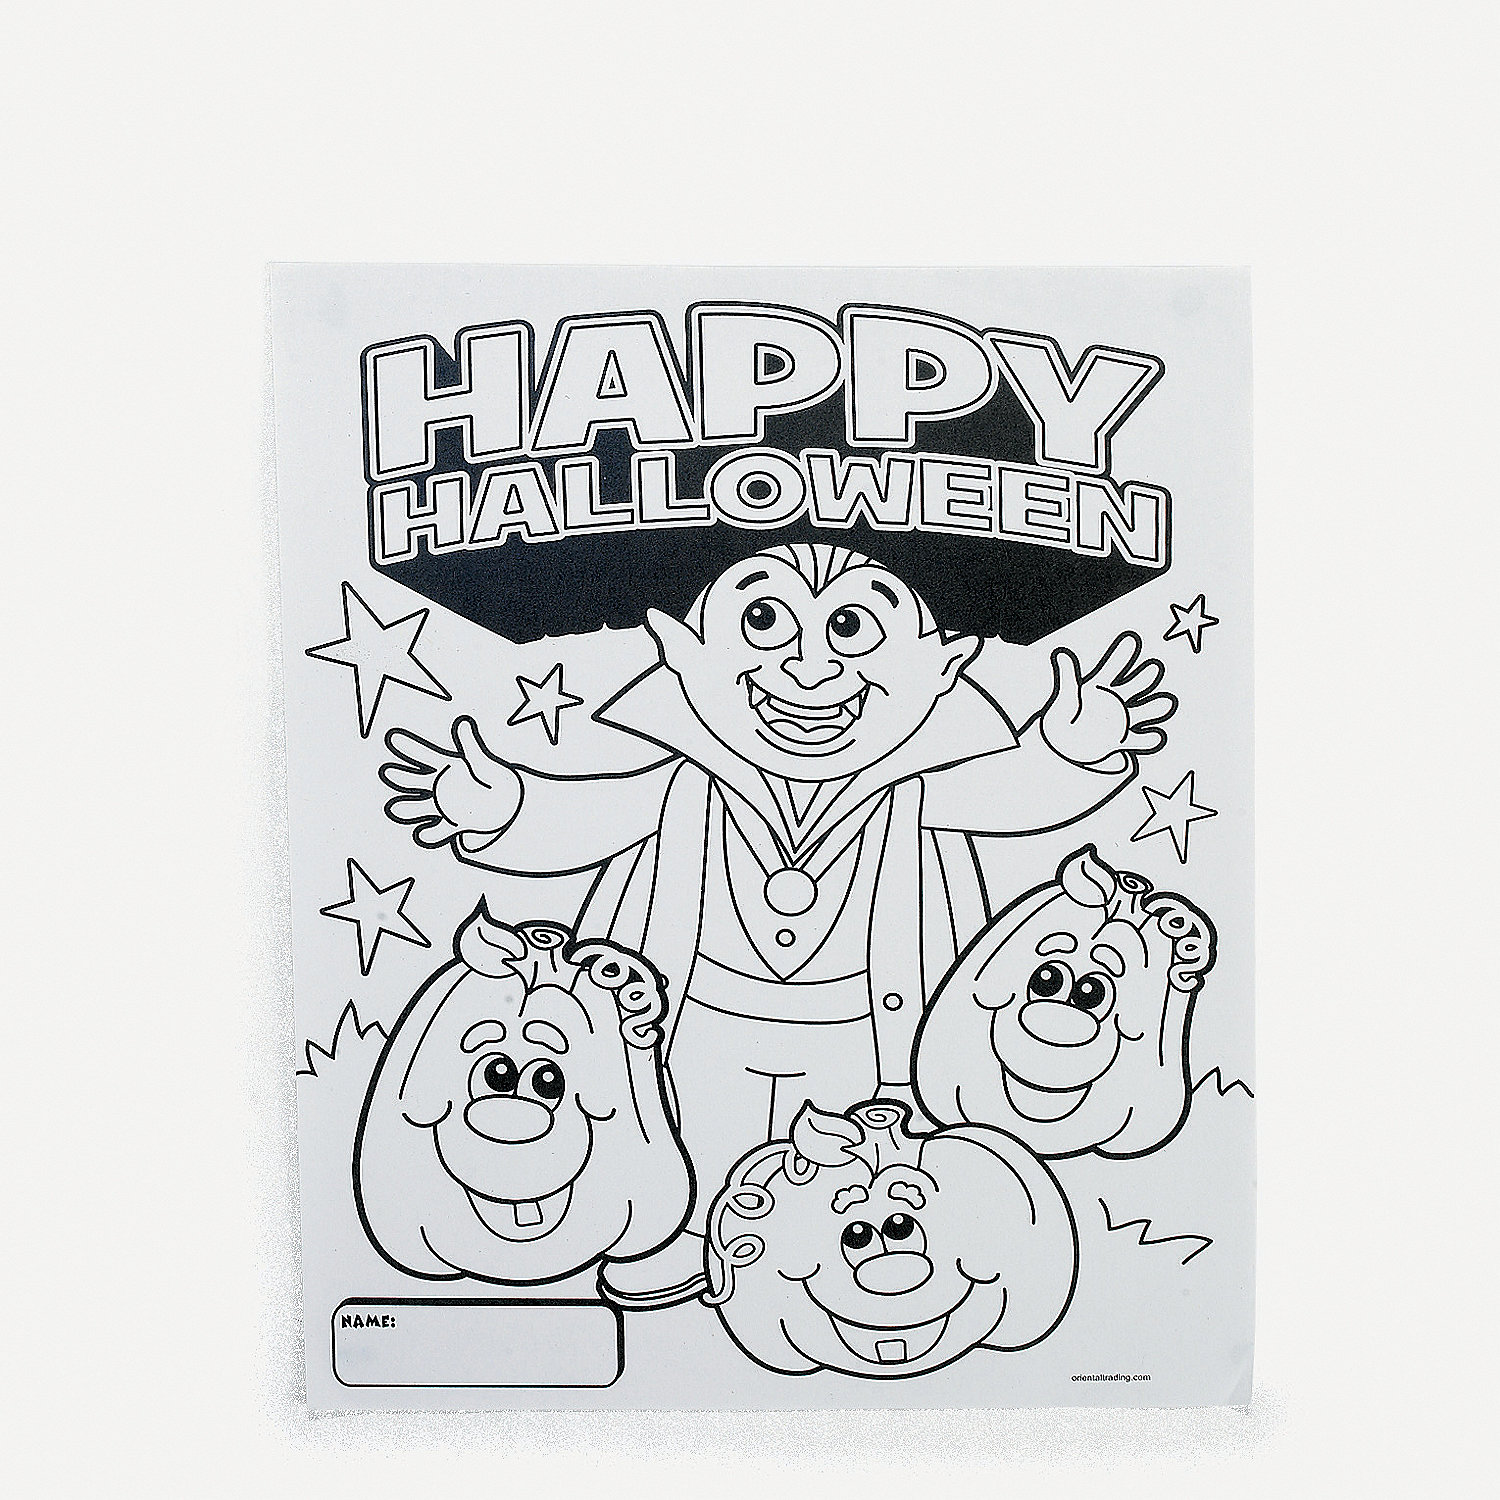 Halloween Coloring Contest Sheets